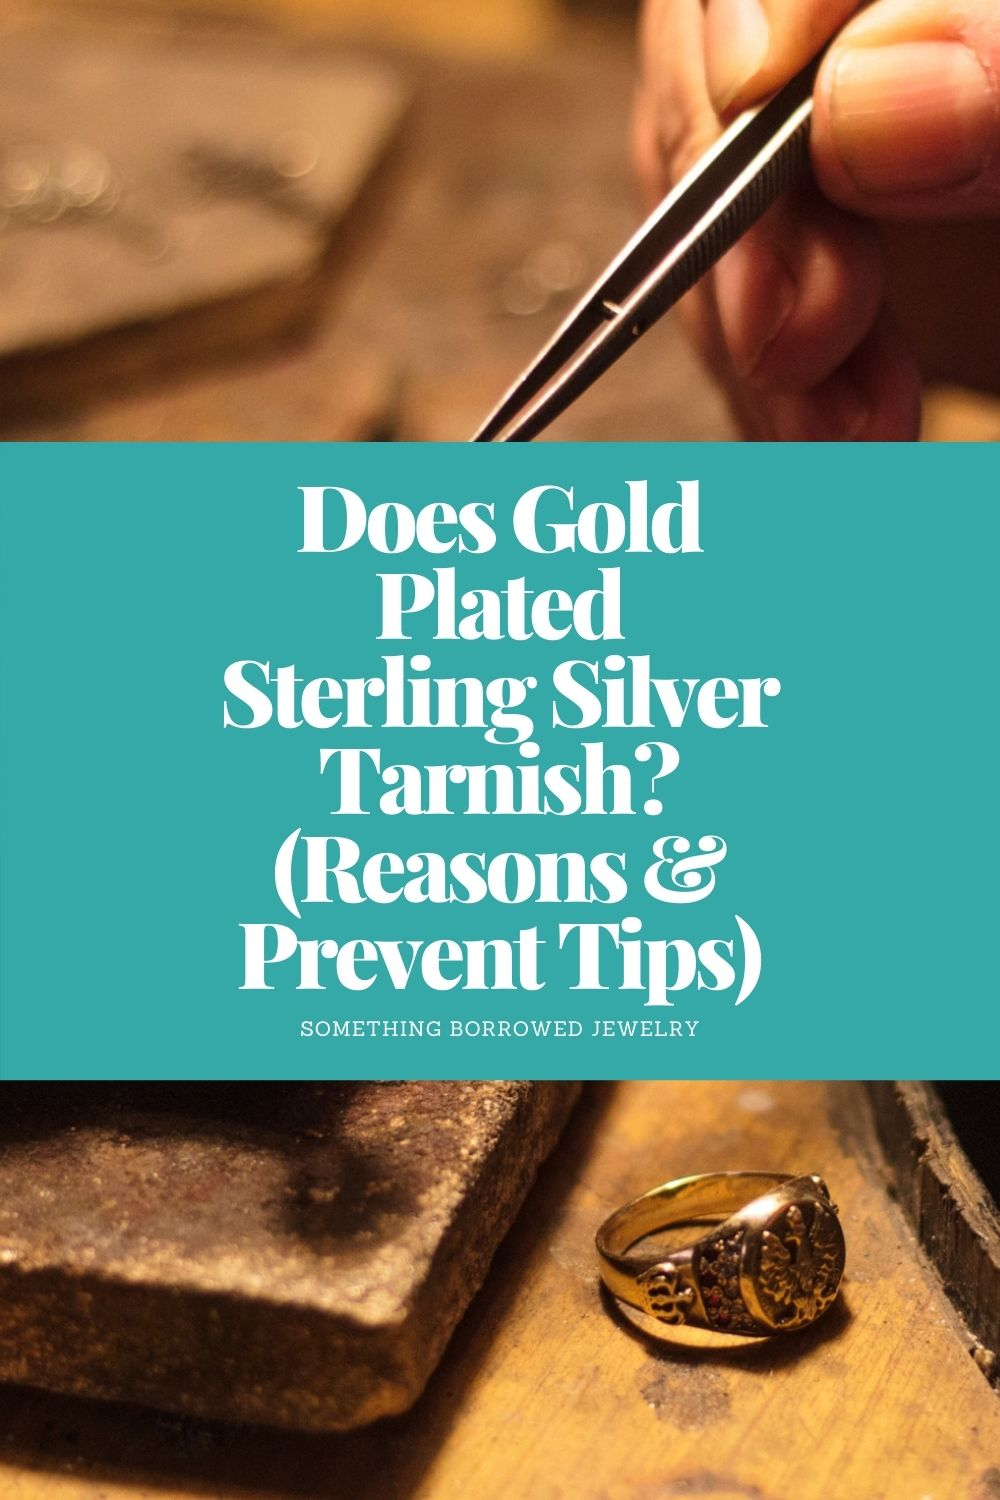 Does Gold Plated Sterling Silver Tarnish (Reasons & Prevent Tips) pin